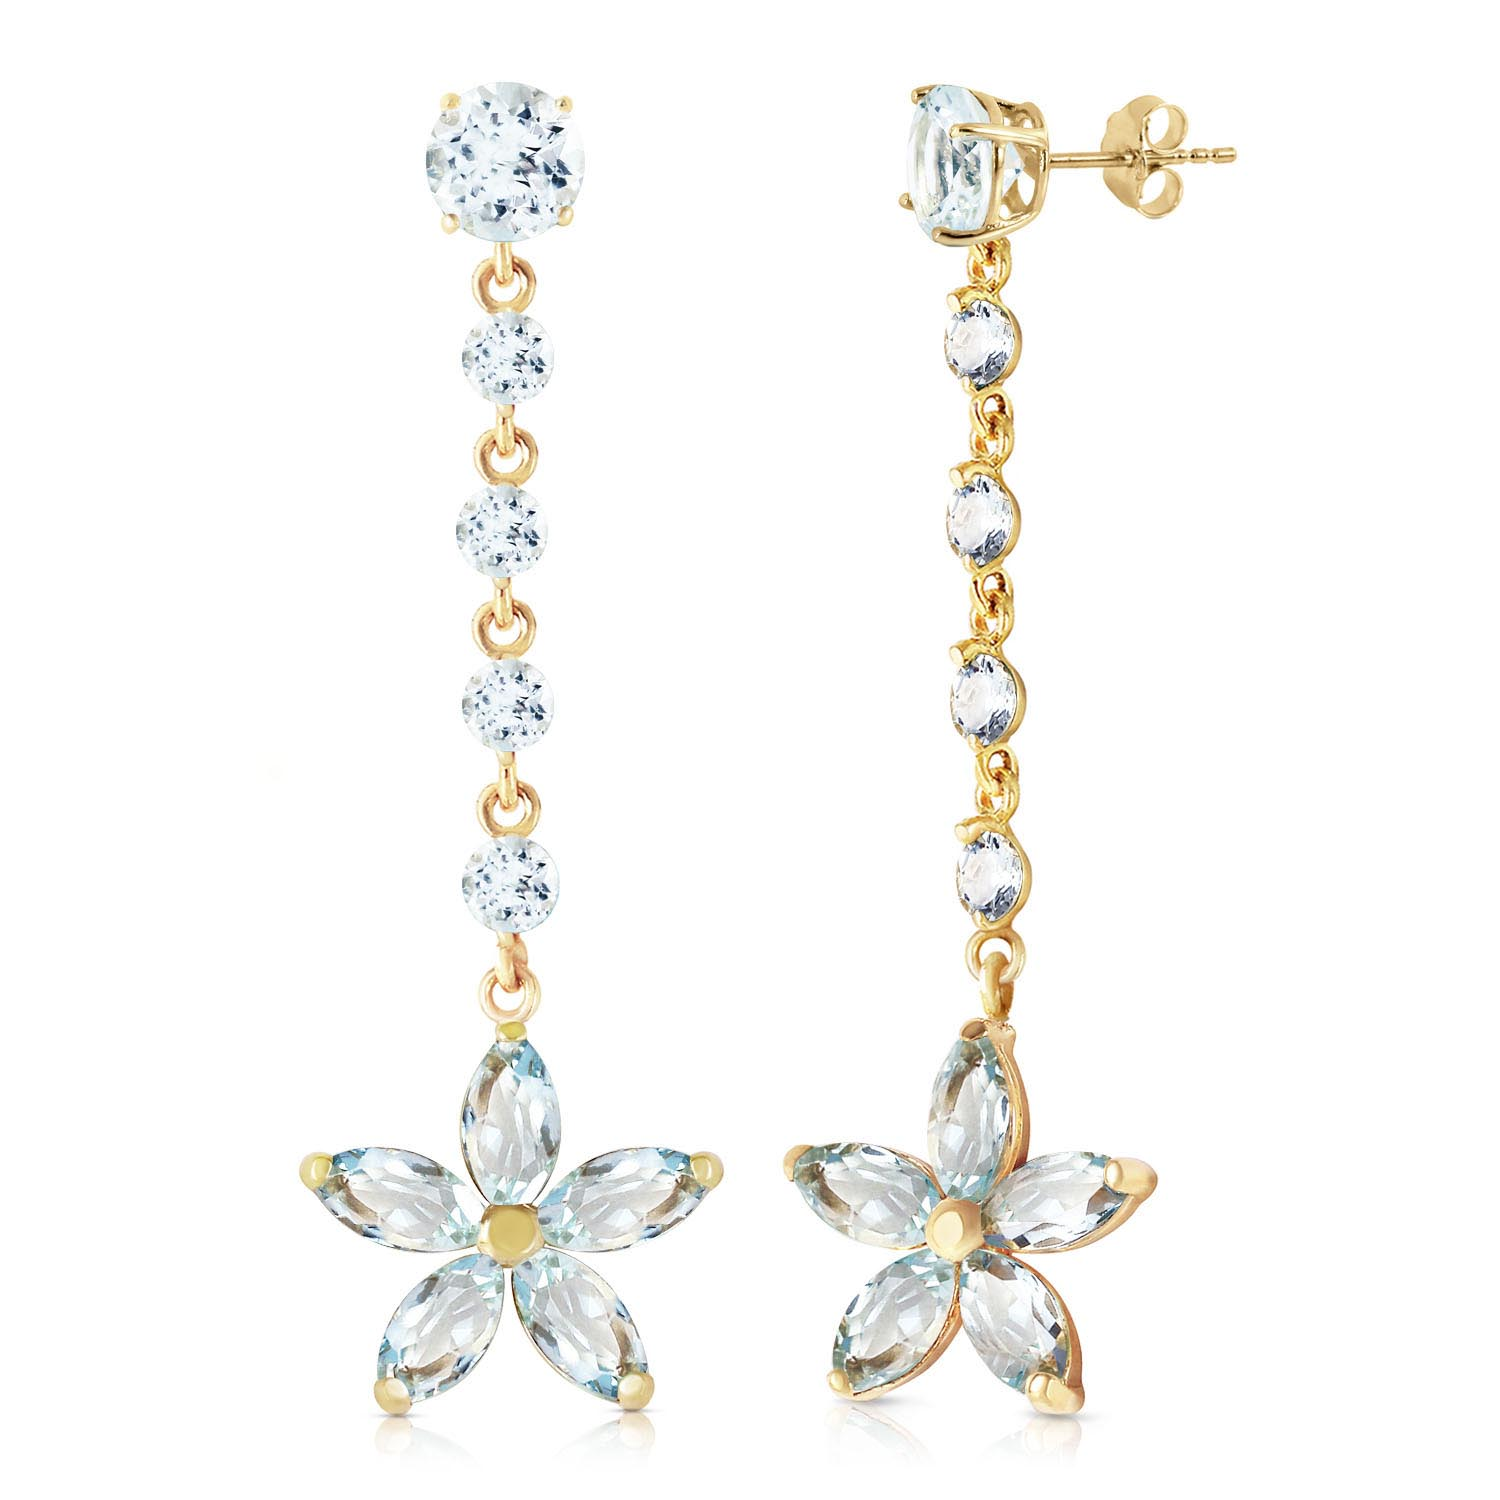 Aquamarine Daisy Chain Drop Earrings 4.8 ctw in 9ct Gold